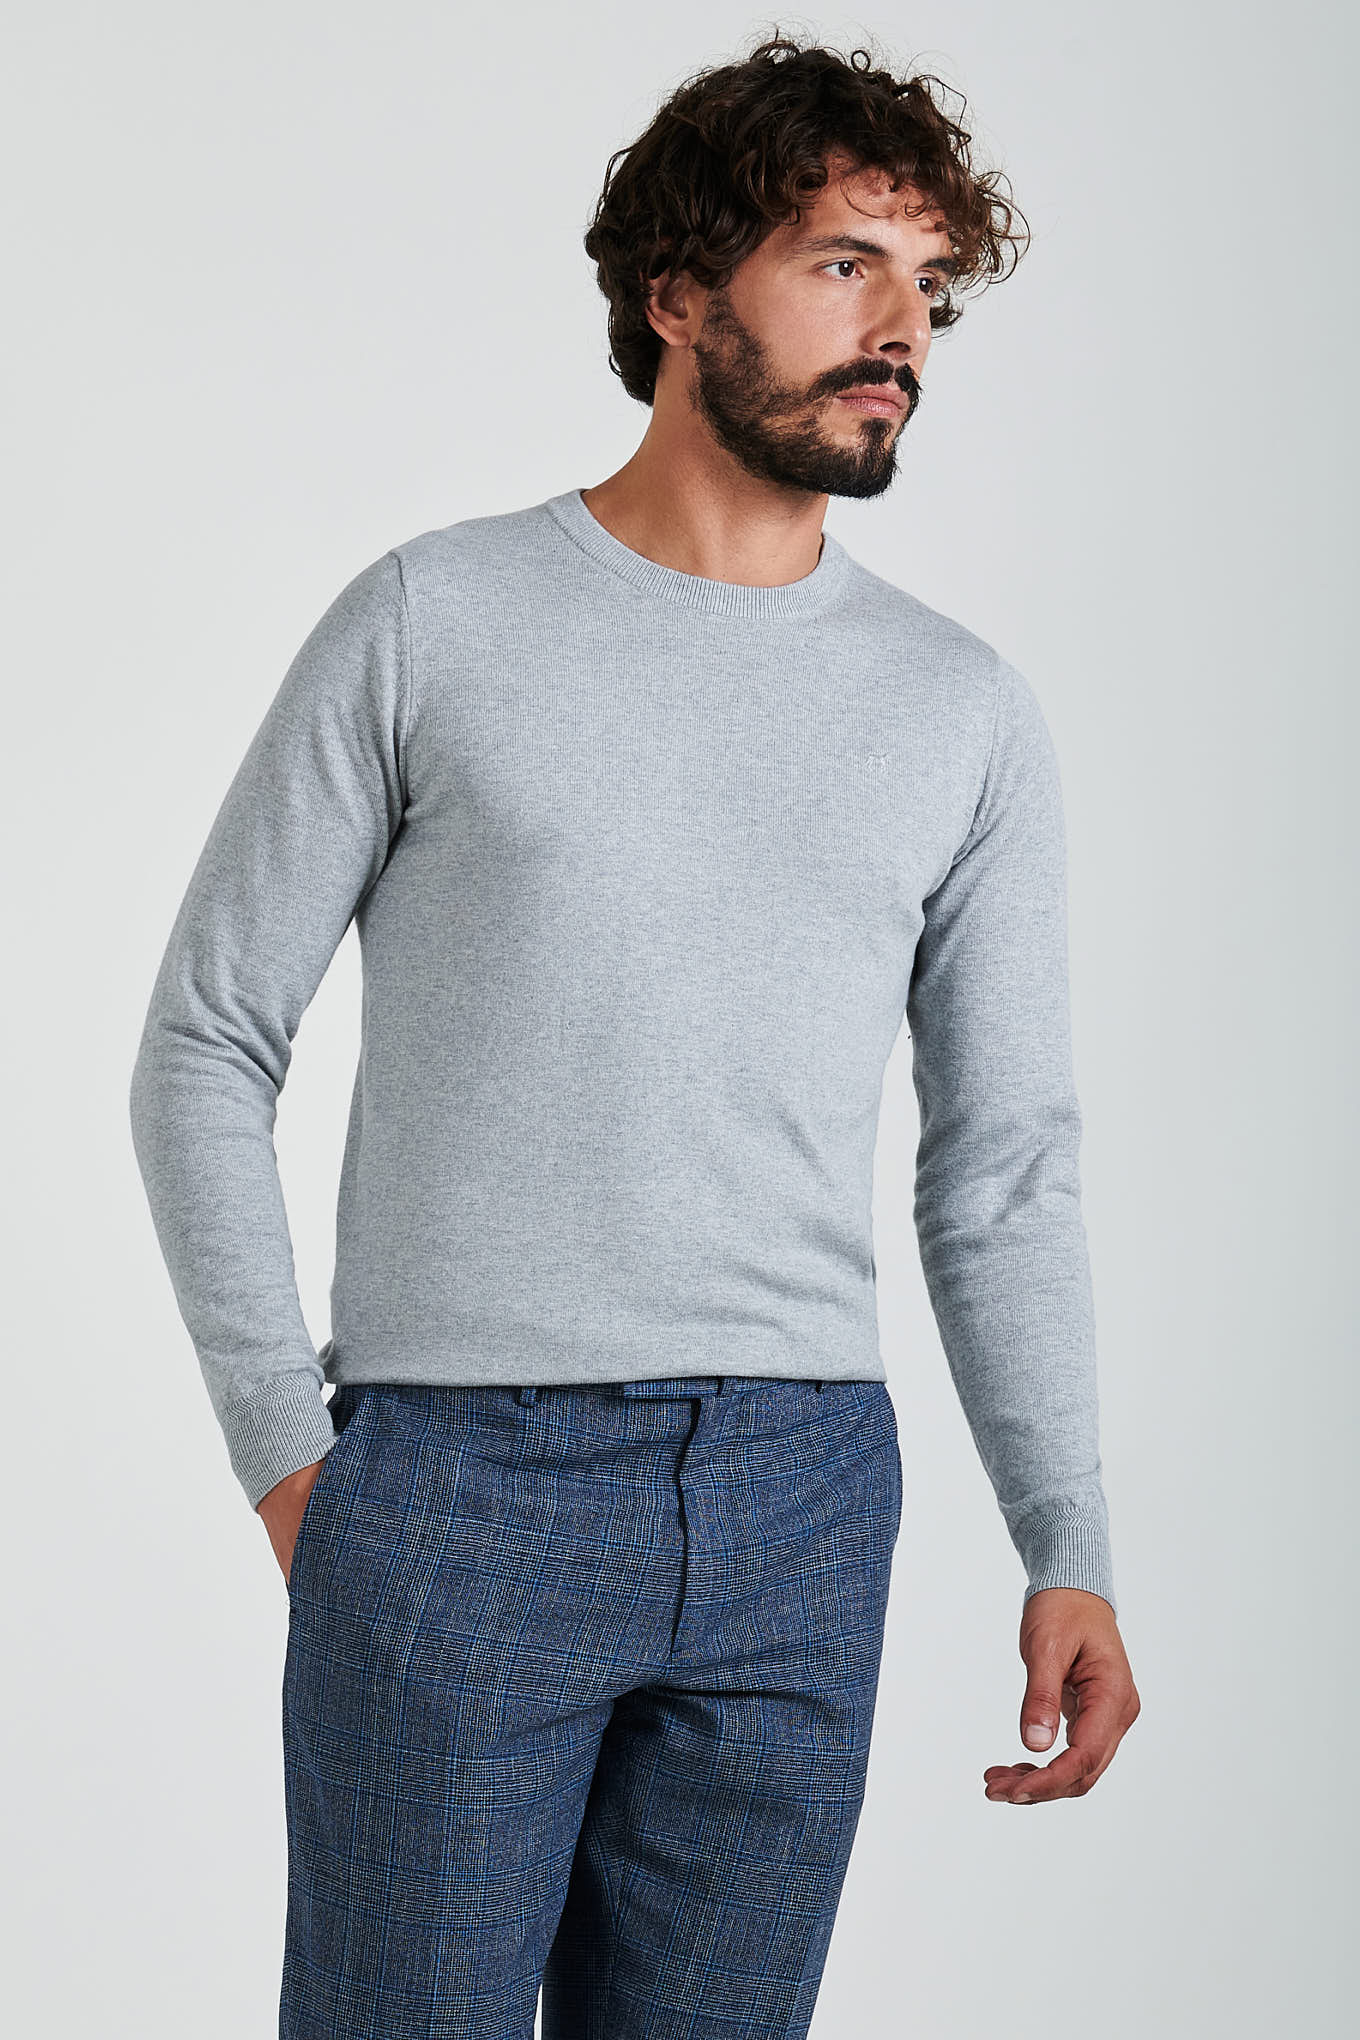 Sweater Light Grey Casual Man